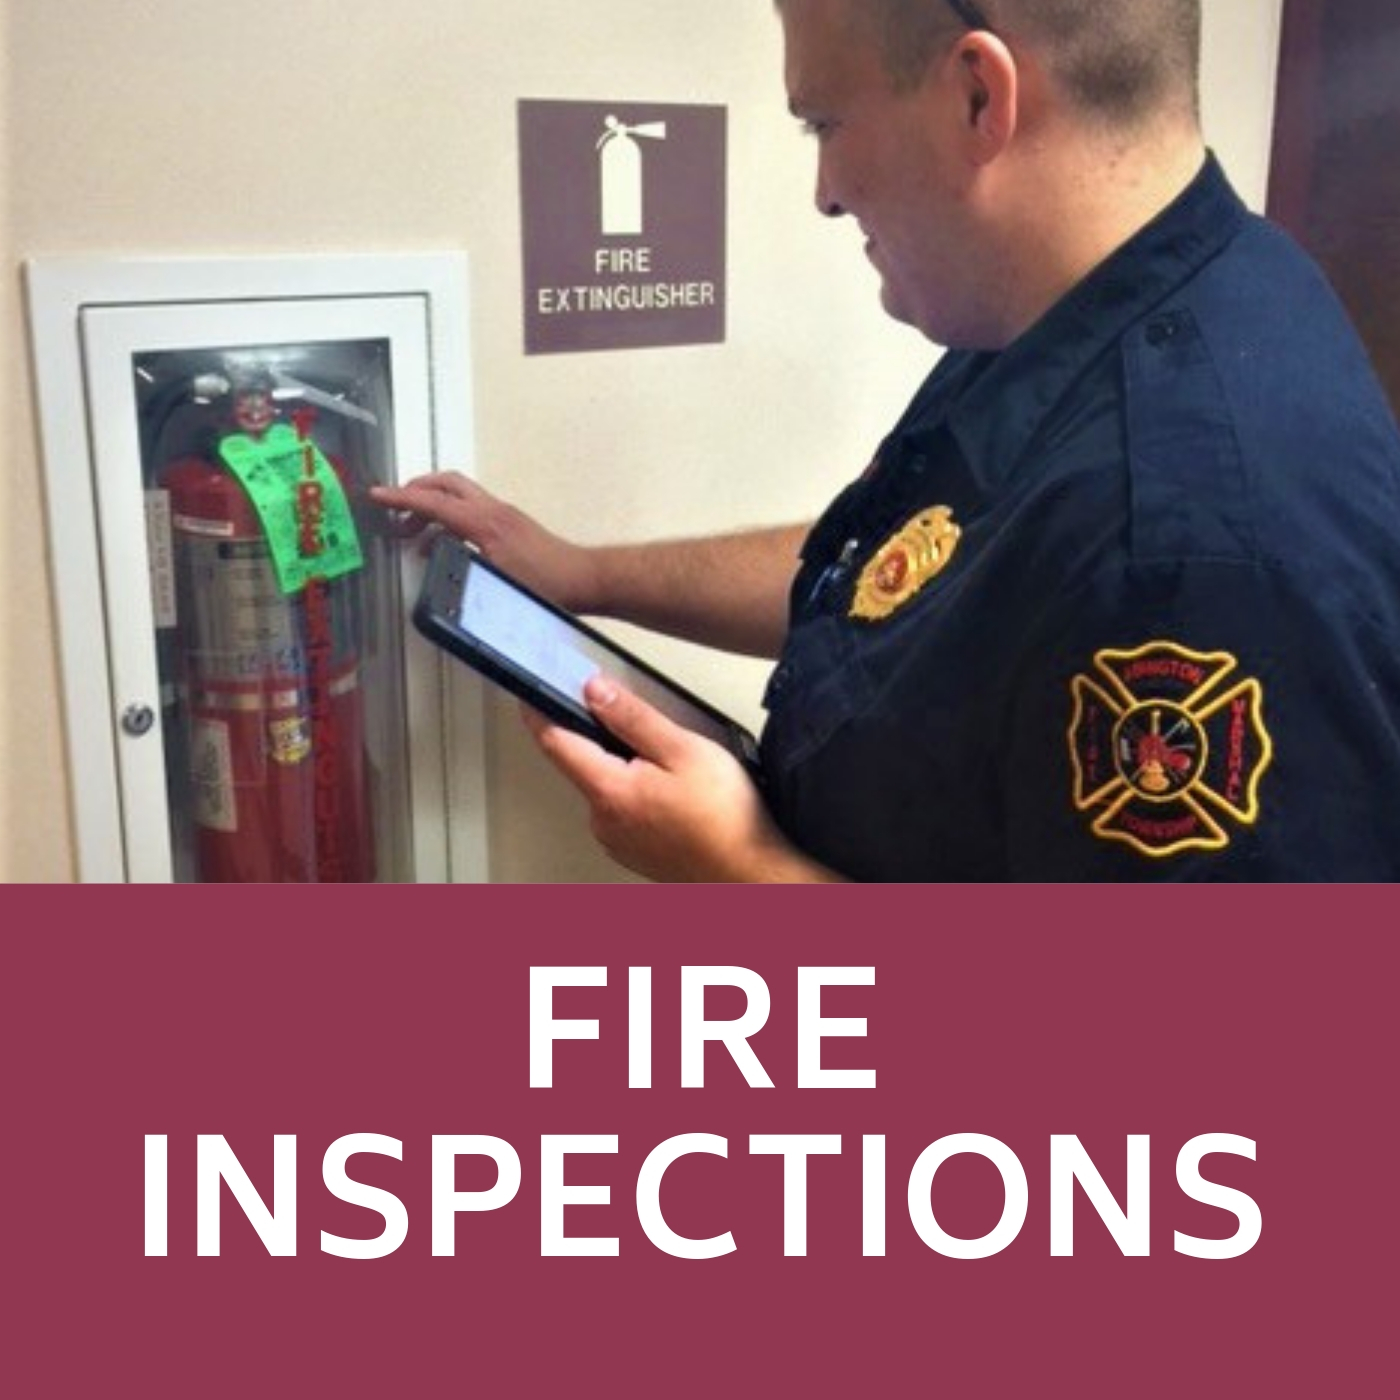 Image of Fire Extinguisher being inspected that links to the Fire Inspections web-page.